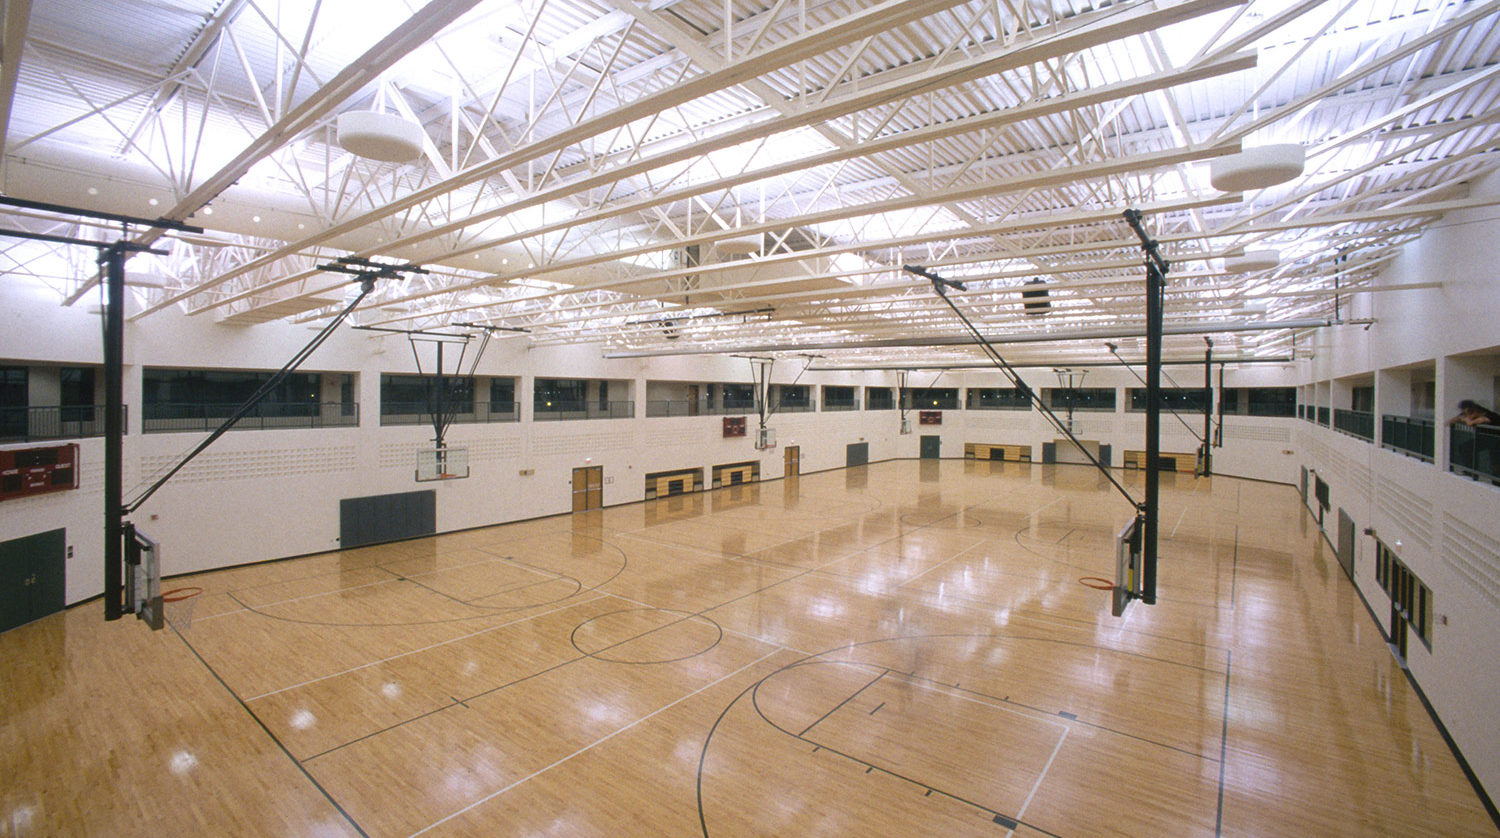 Glenview Park District Park Center basketball court